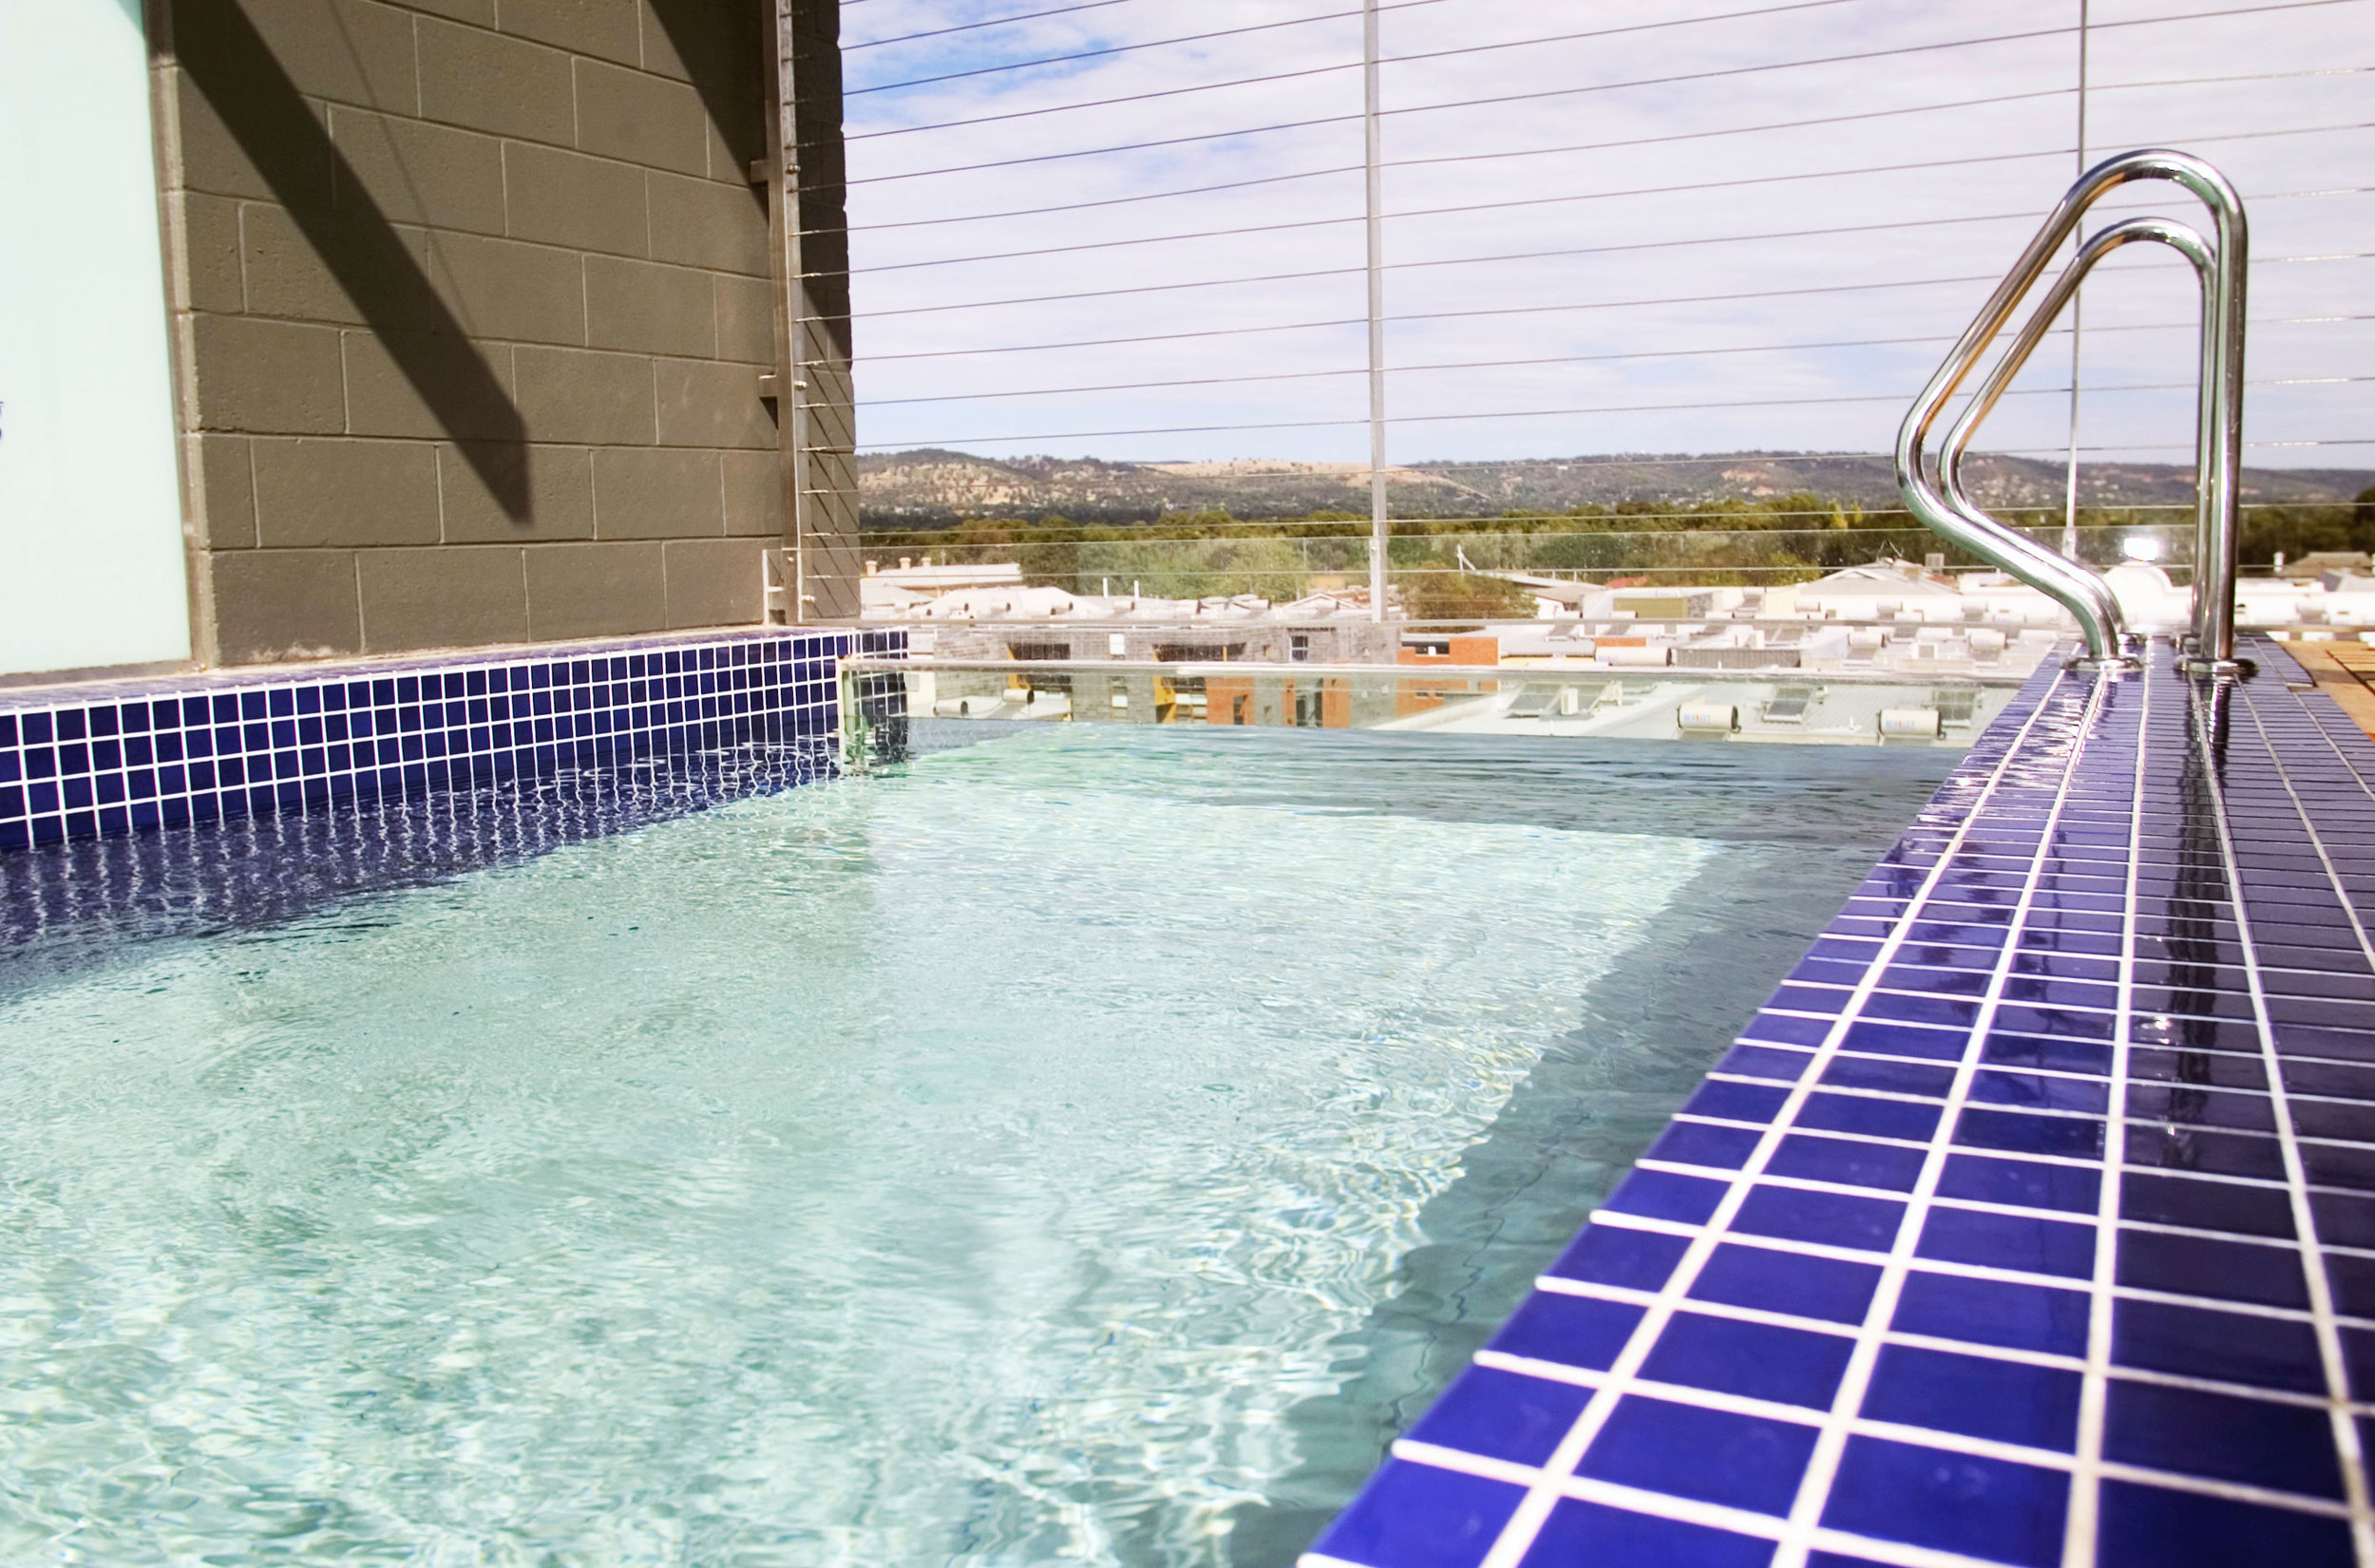 A rooftop pool serves as a communal space